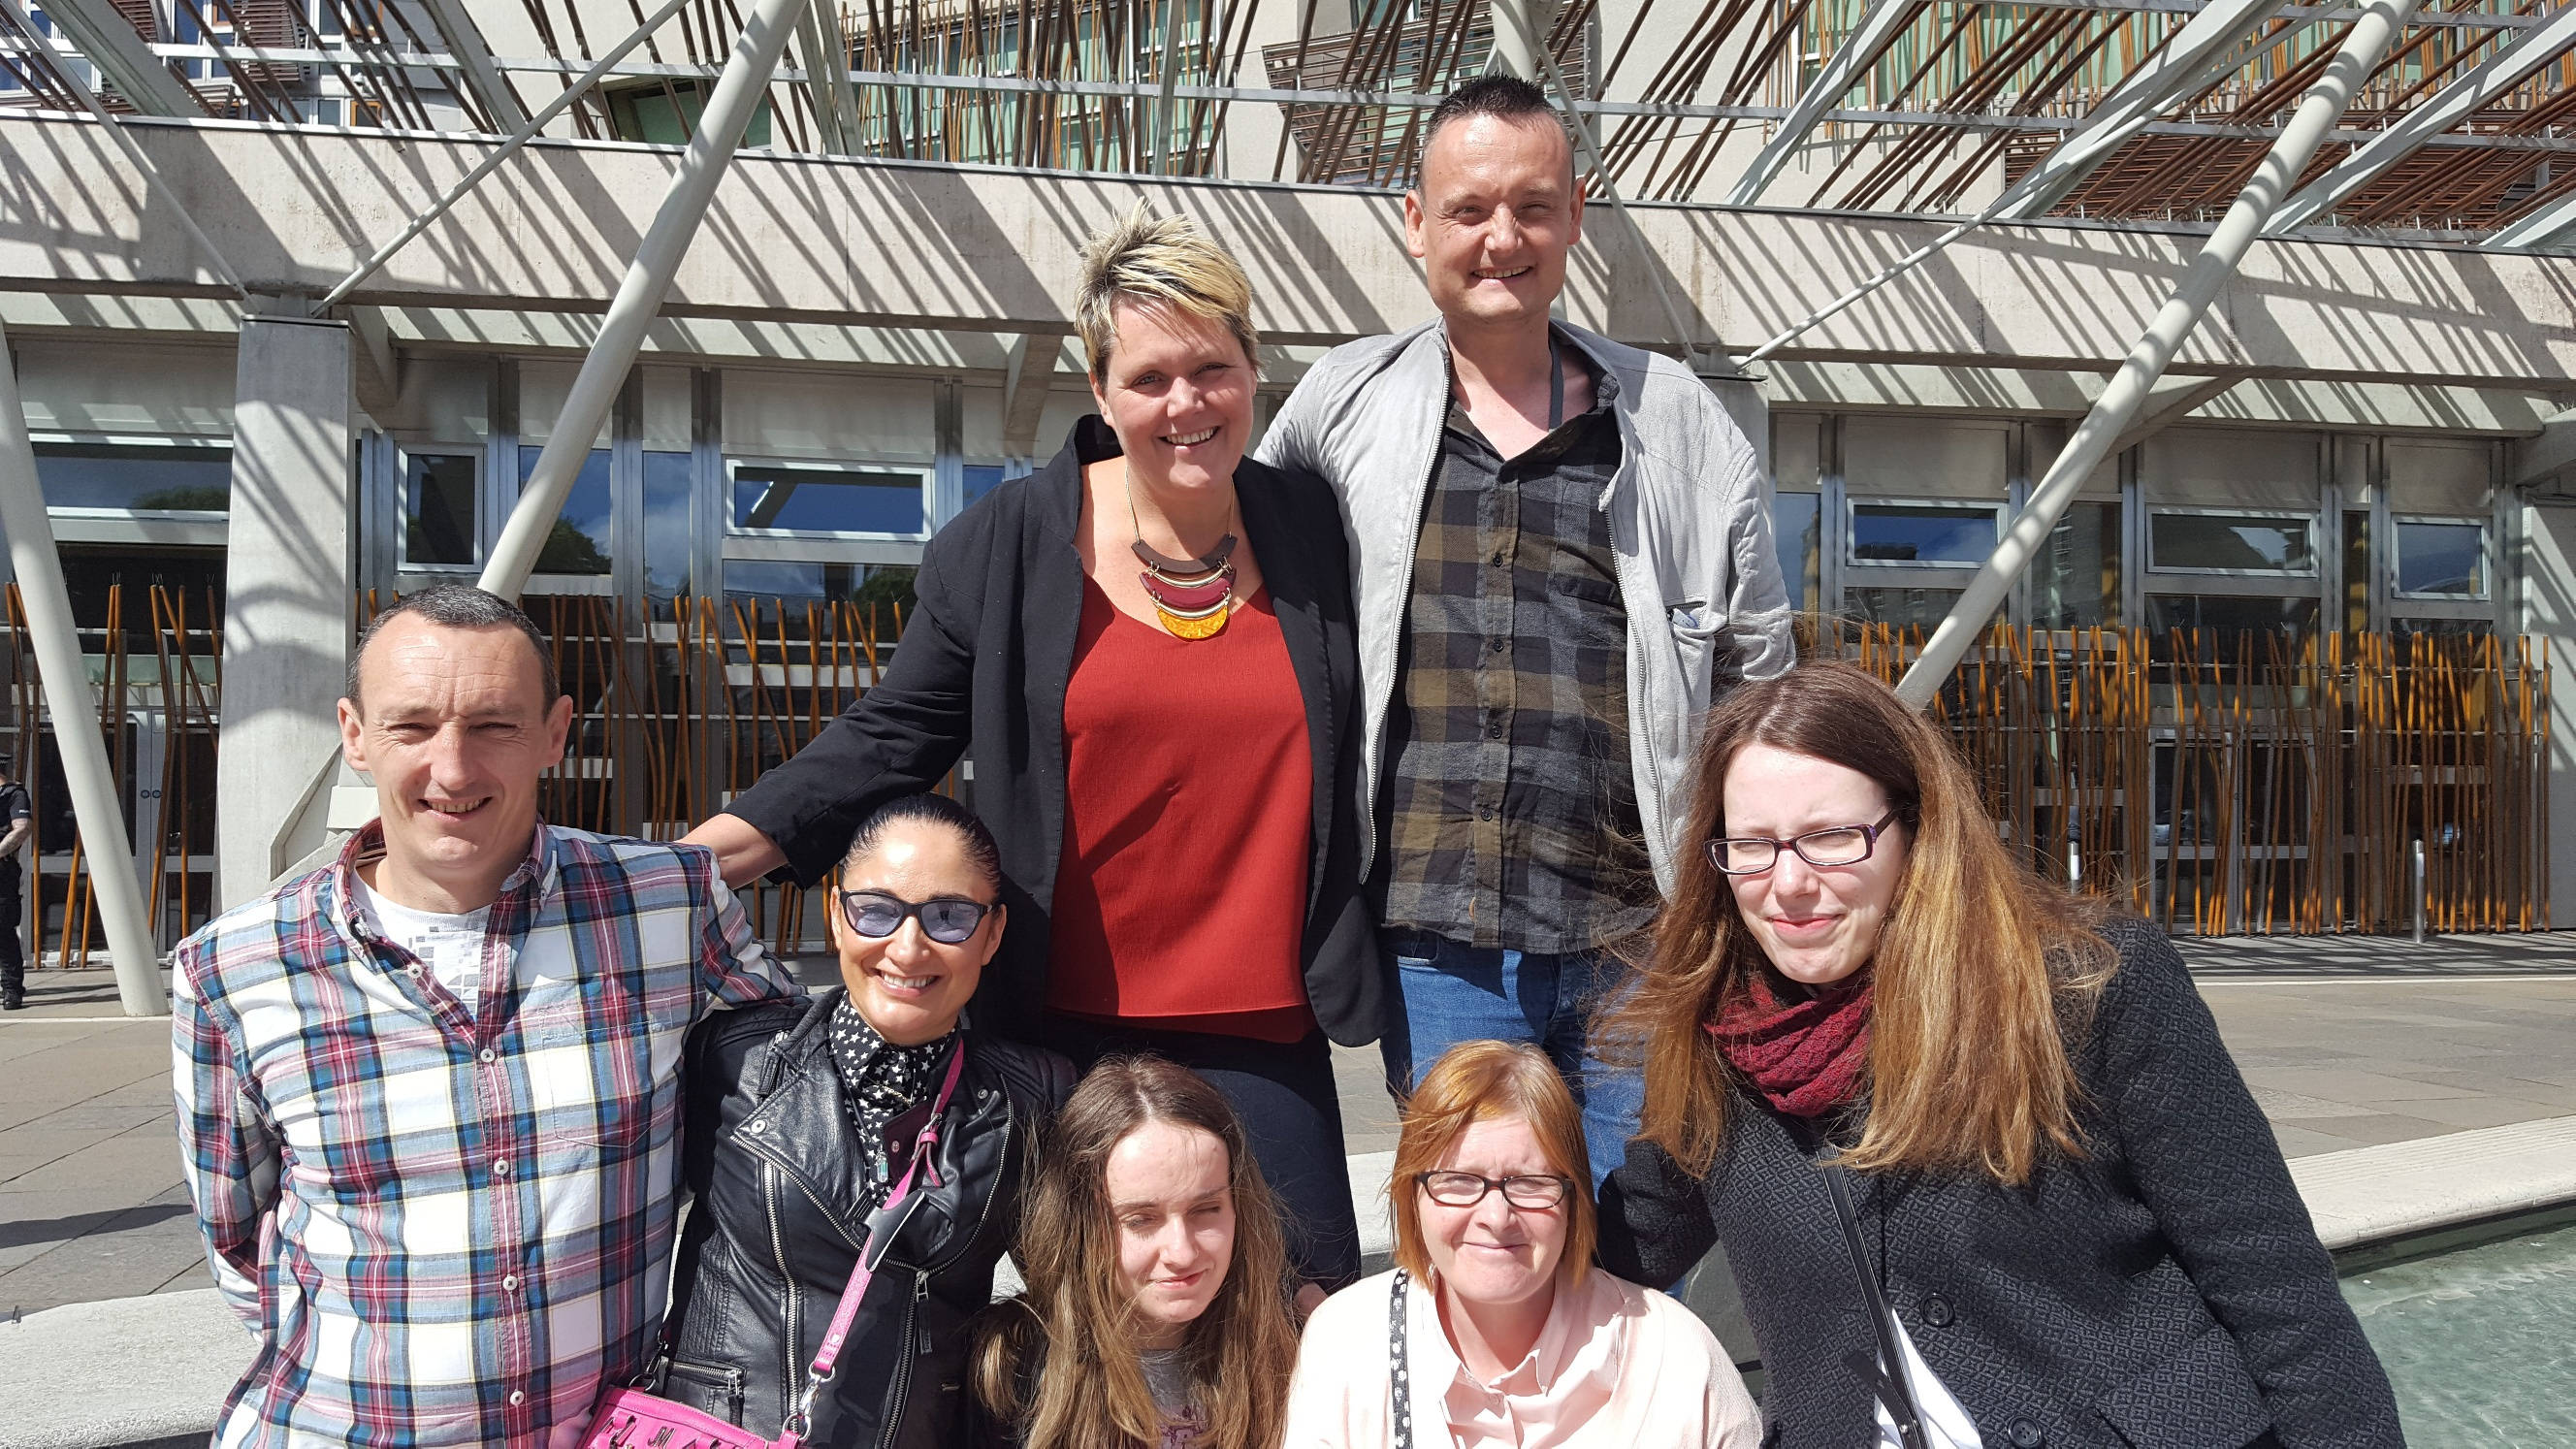 Group 2 at Scottish Parliament with Steven Connelly (no logo)